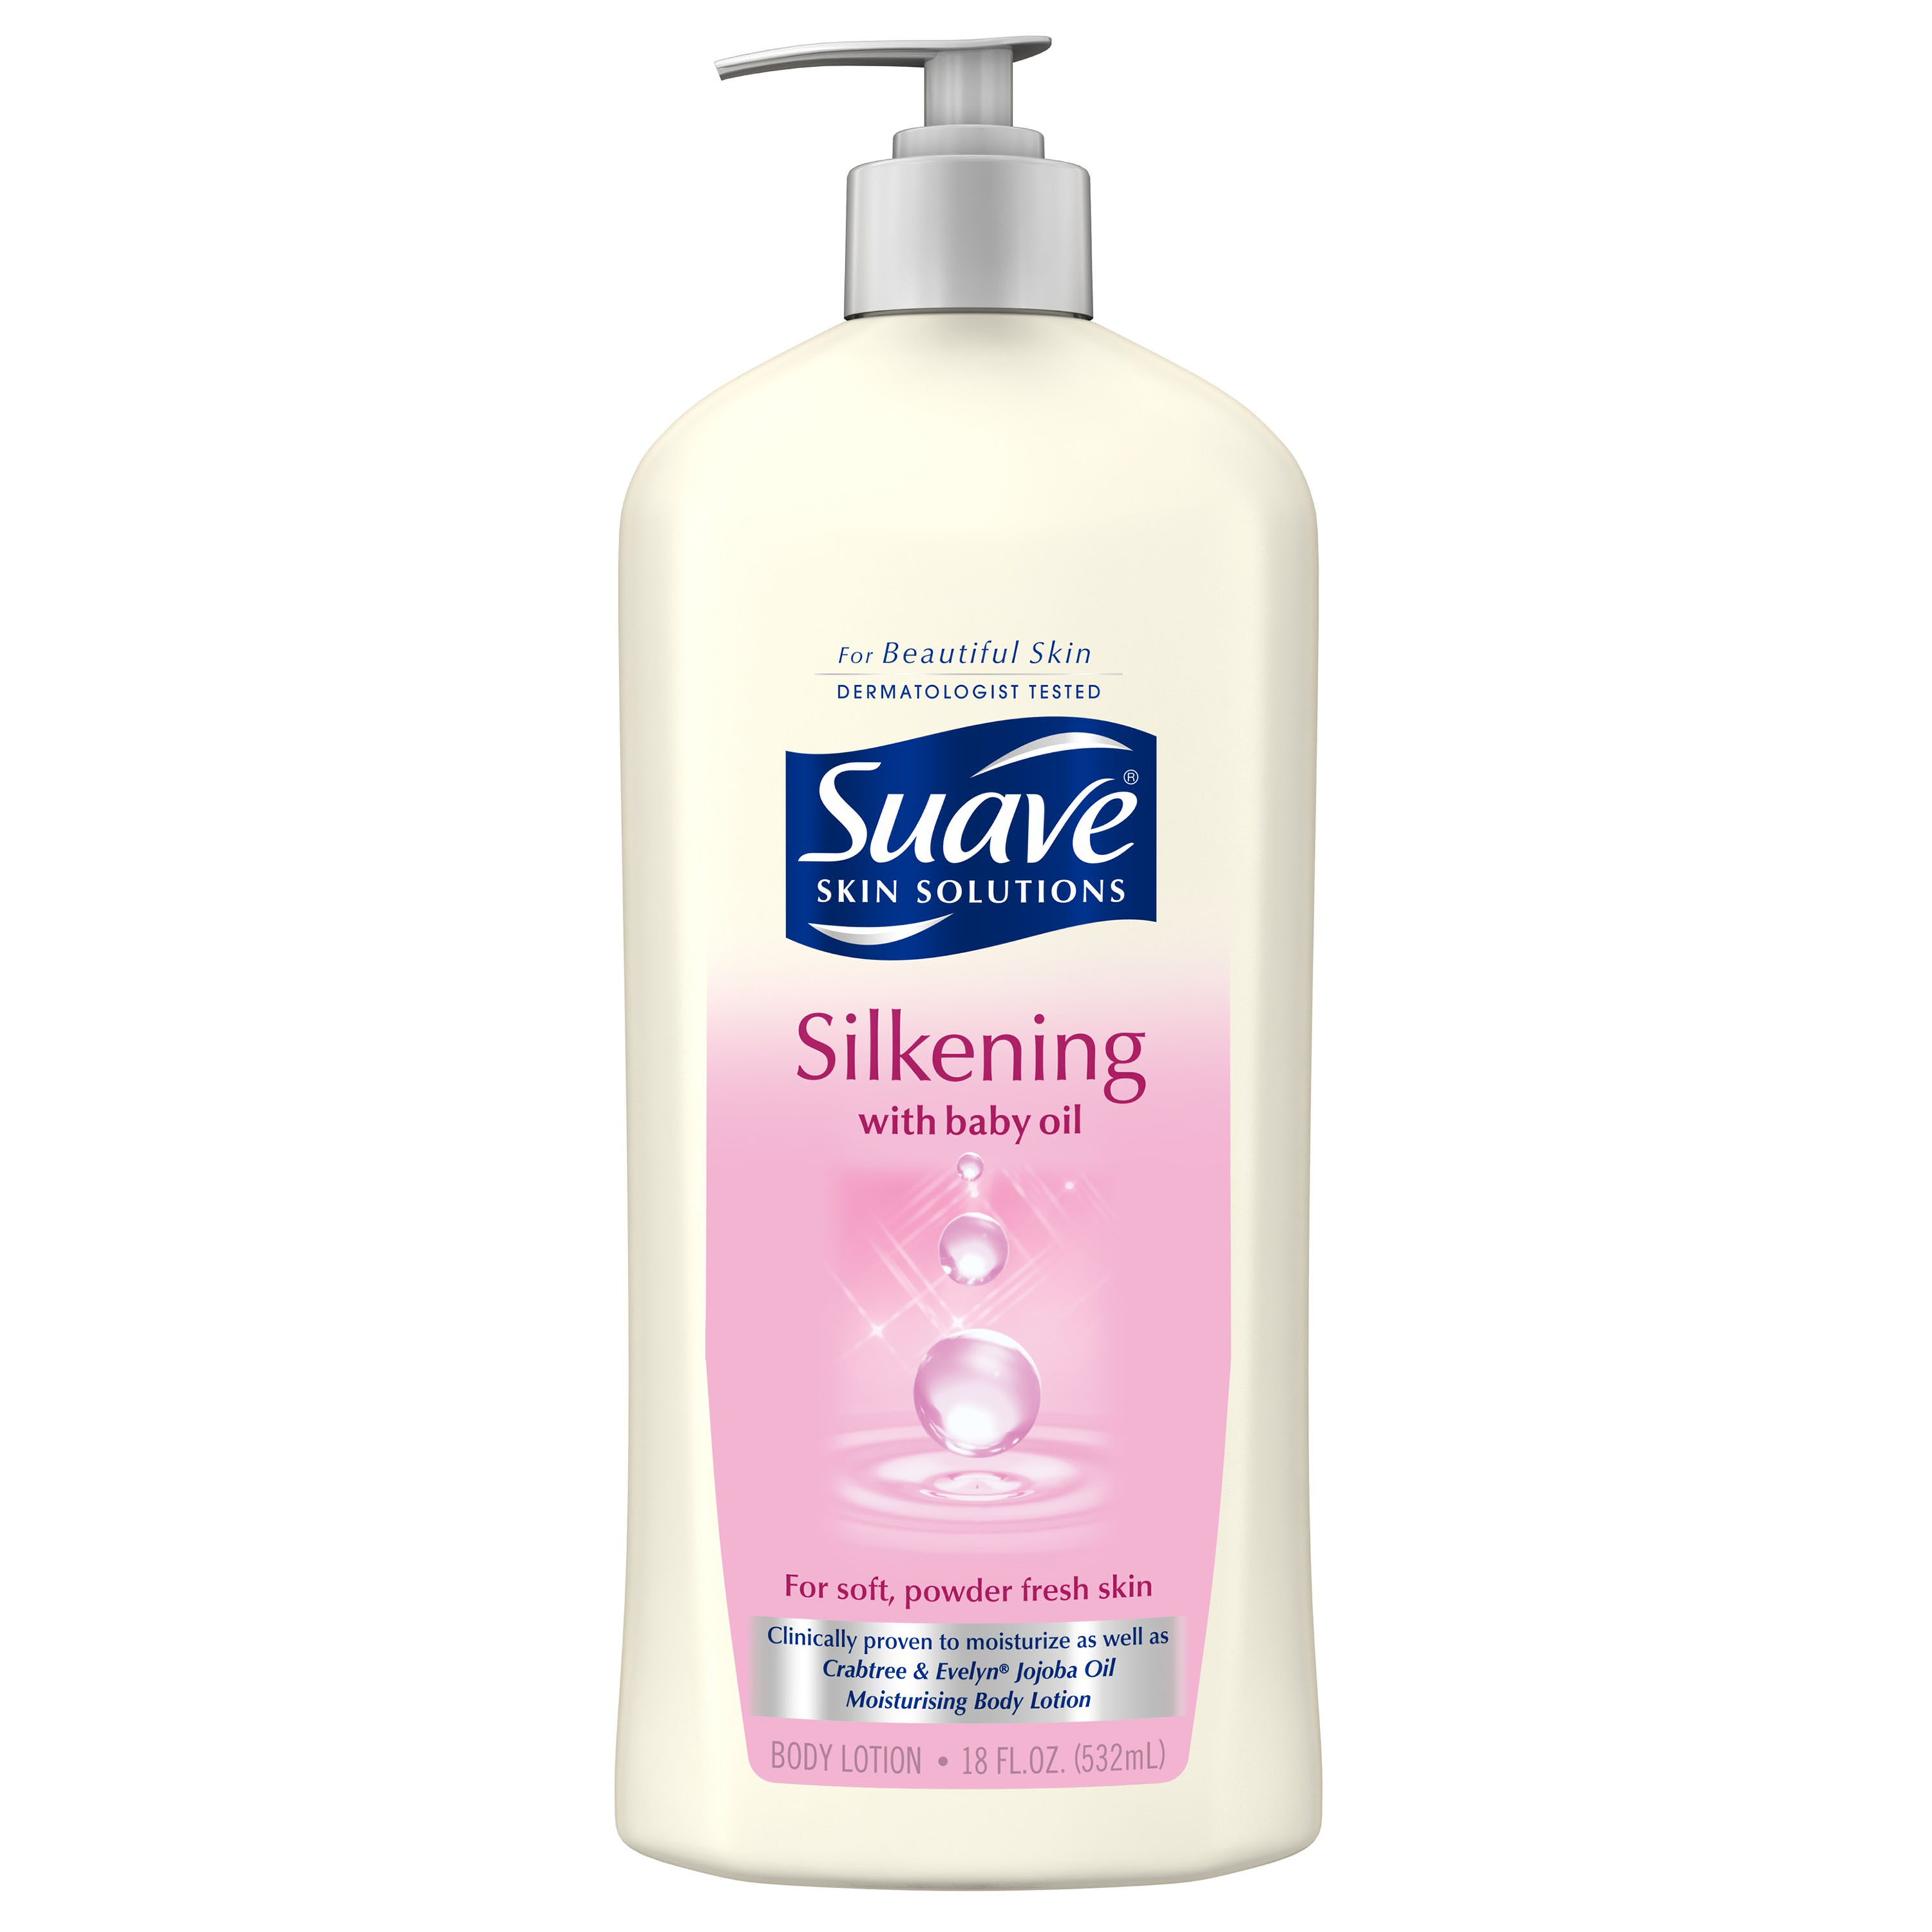 Suave Skin Solutions Silkening with Baby Oil Body Lotion, 18 oz by Unilever